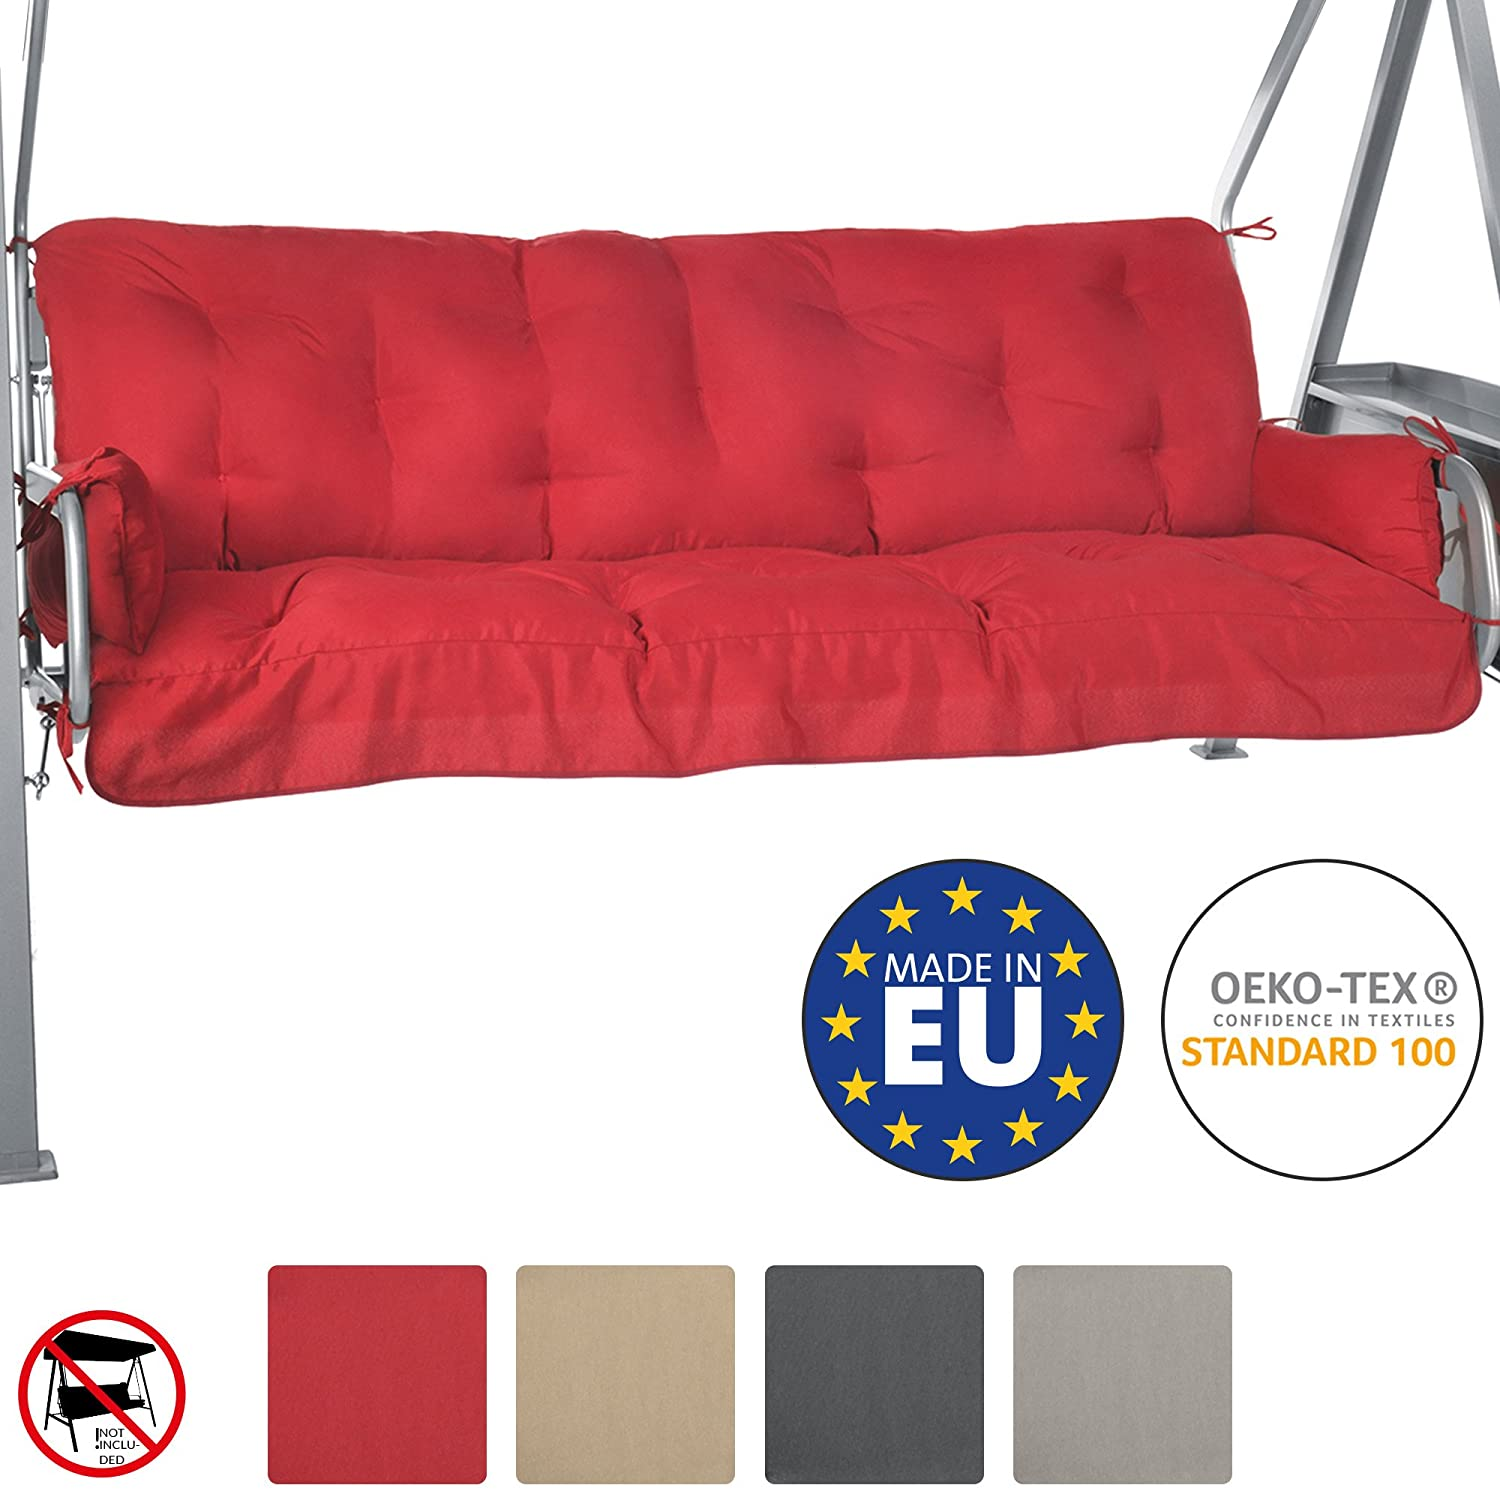 Beautissu Bench Cushion For Canopy Swing Seat Flair HS 180 x 50 x 8 cm 3 Seat Hammock Cushion Flake Filling Natural